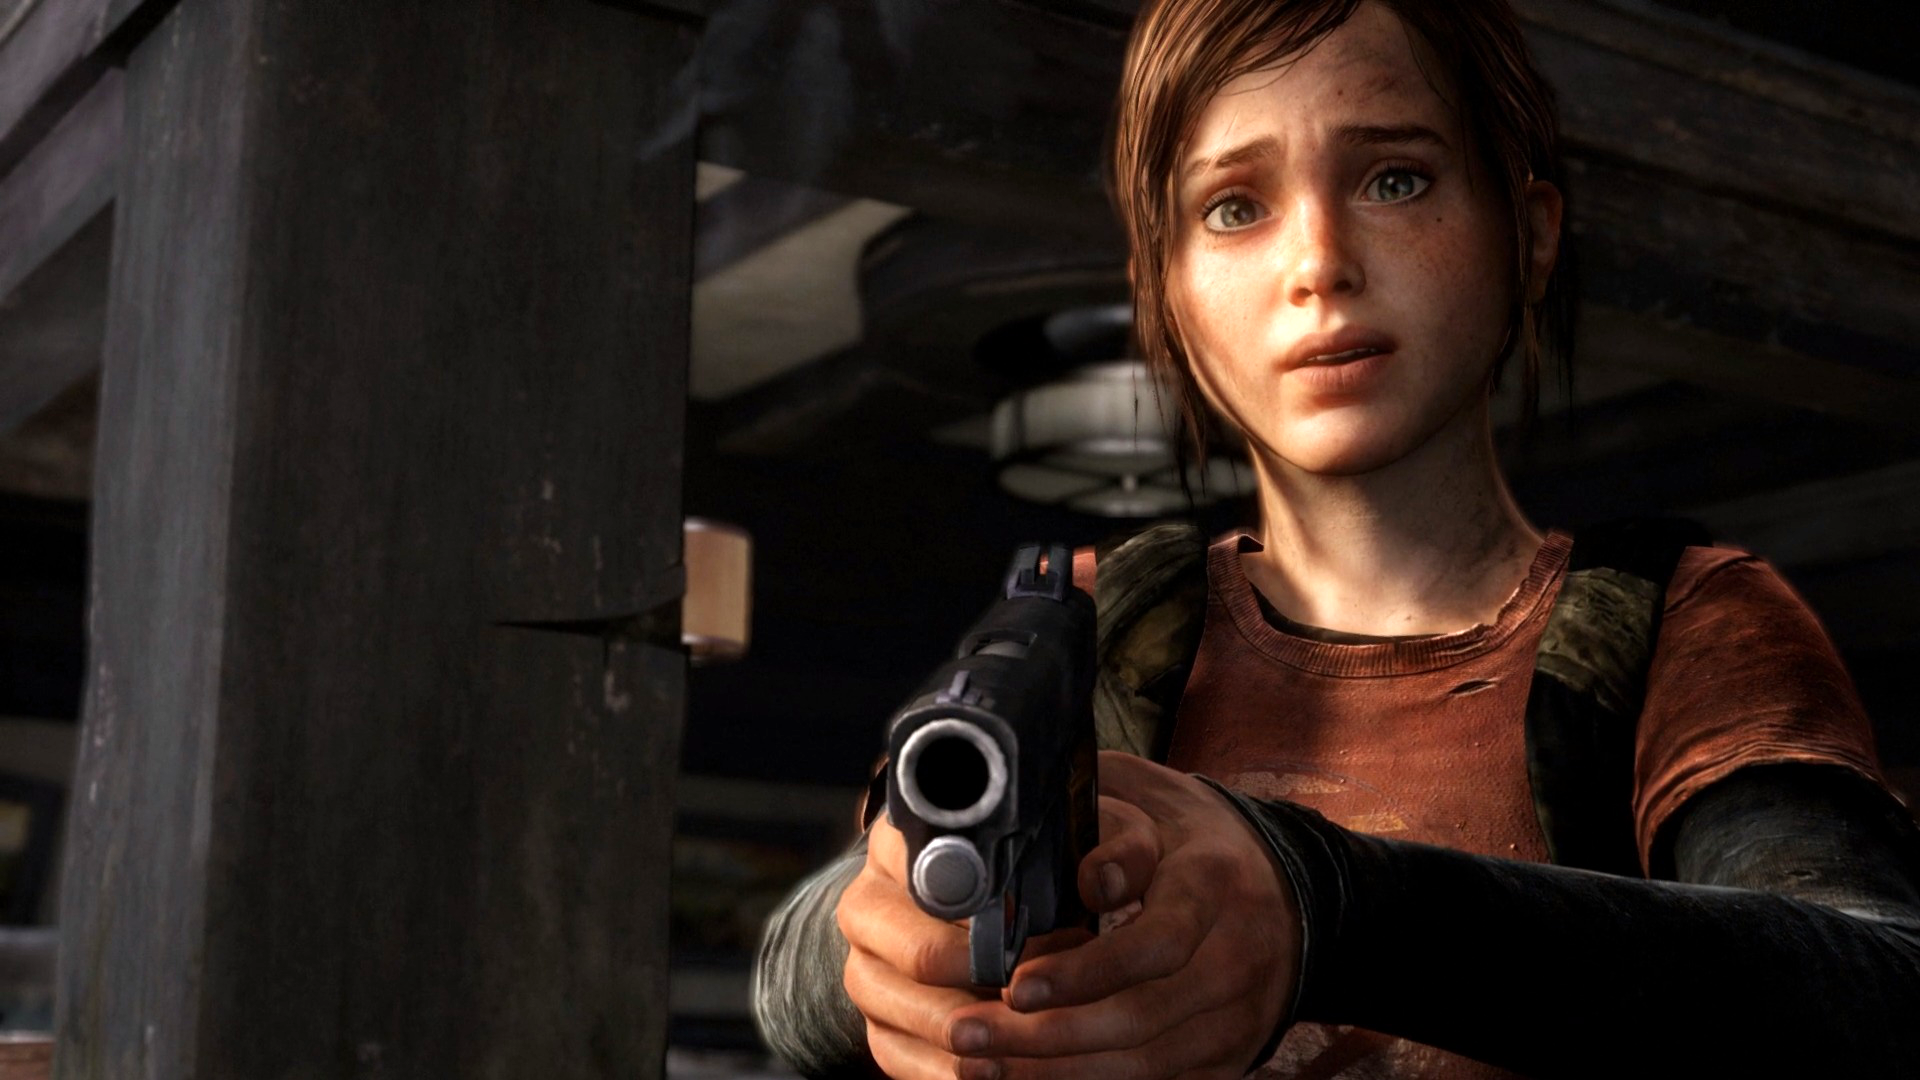 The Last Of Us Hd Wallpaper Background Image 1920x1080 Id